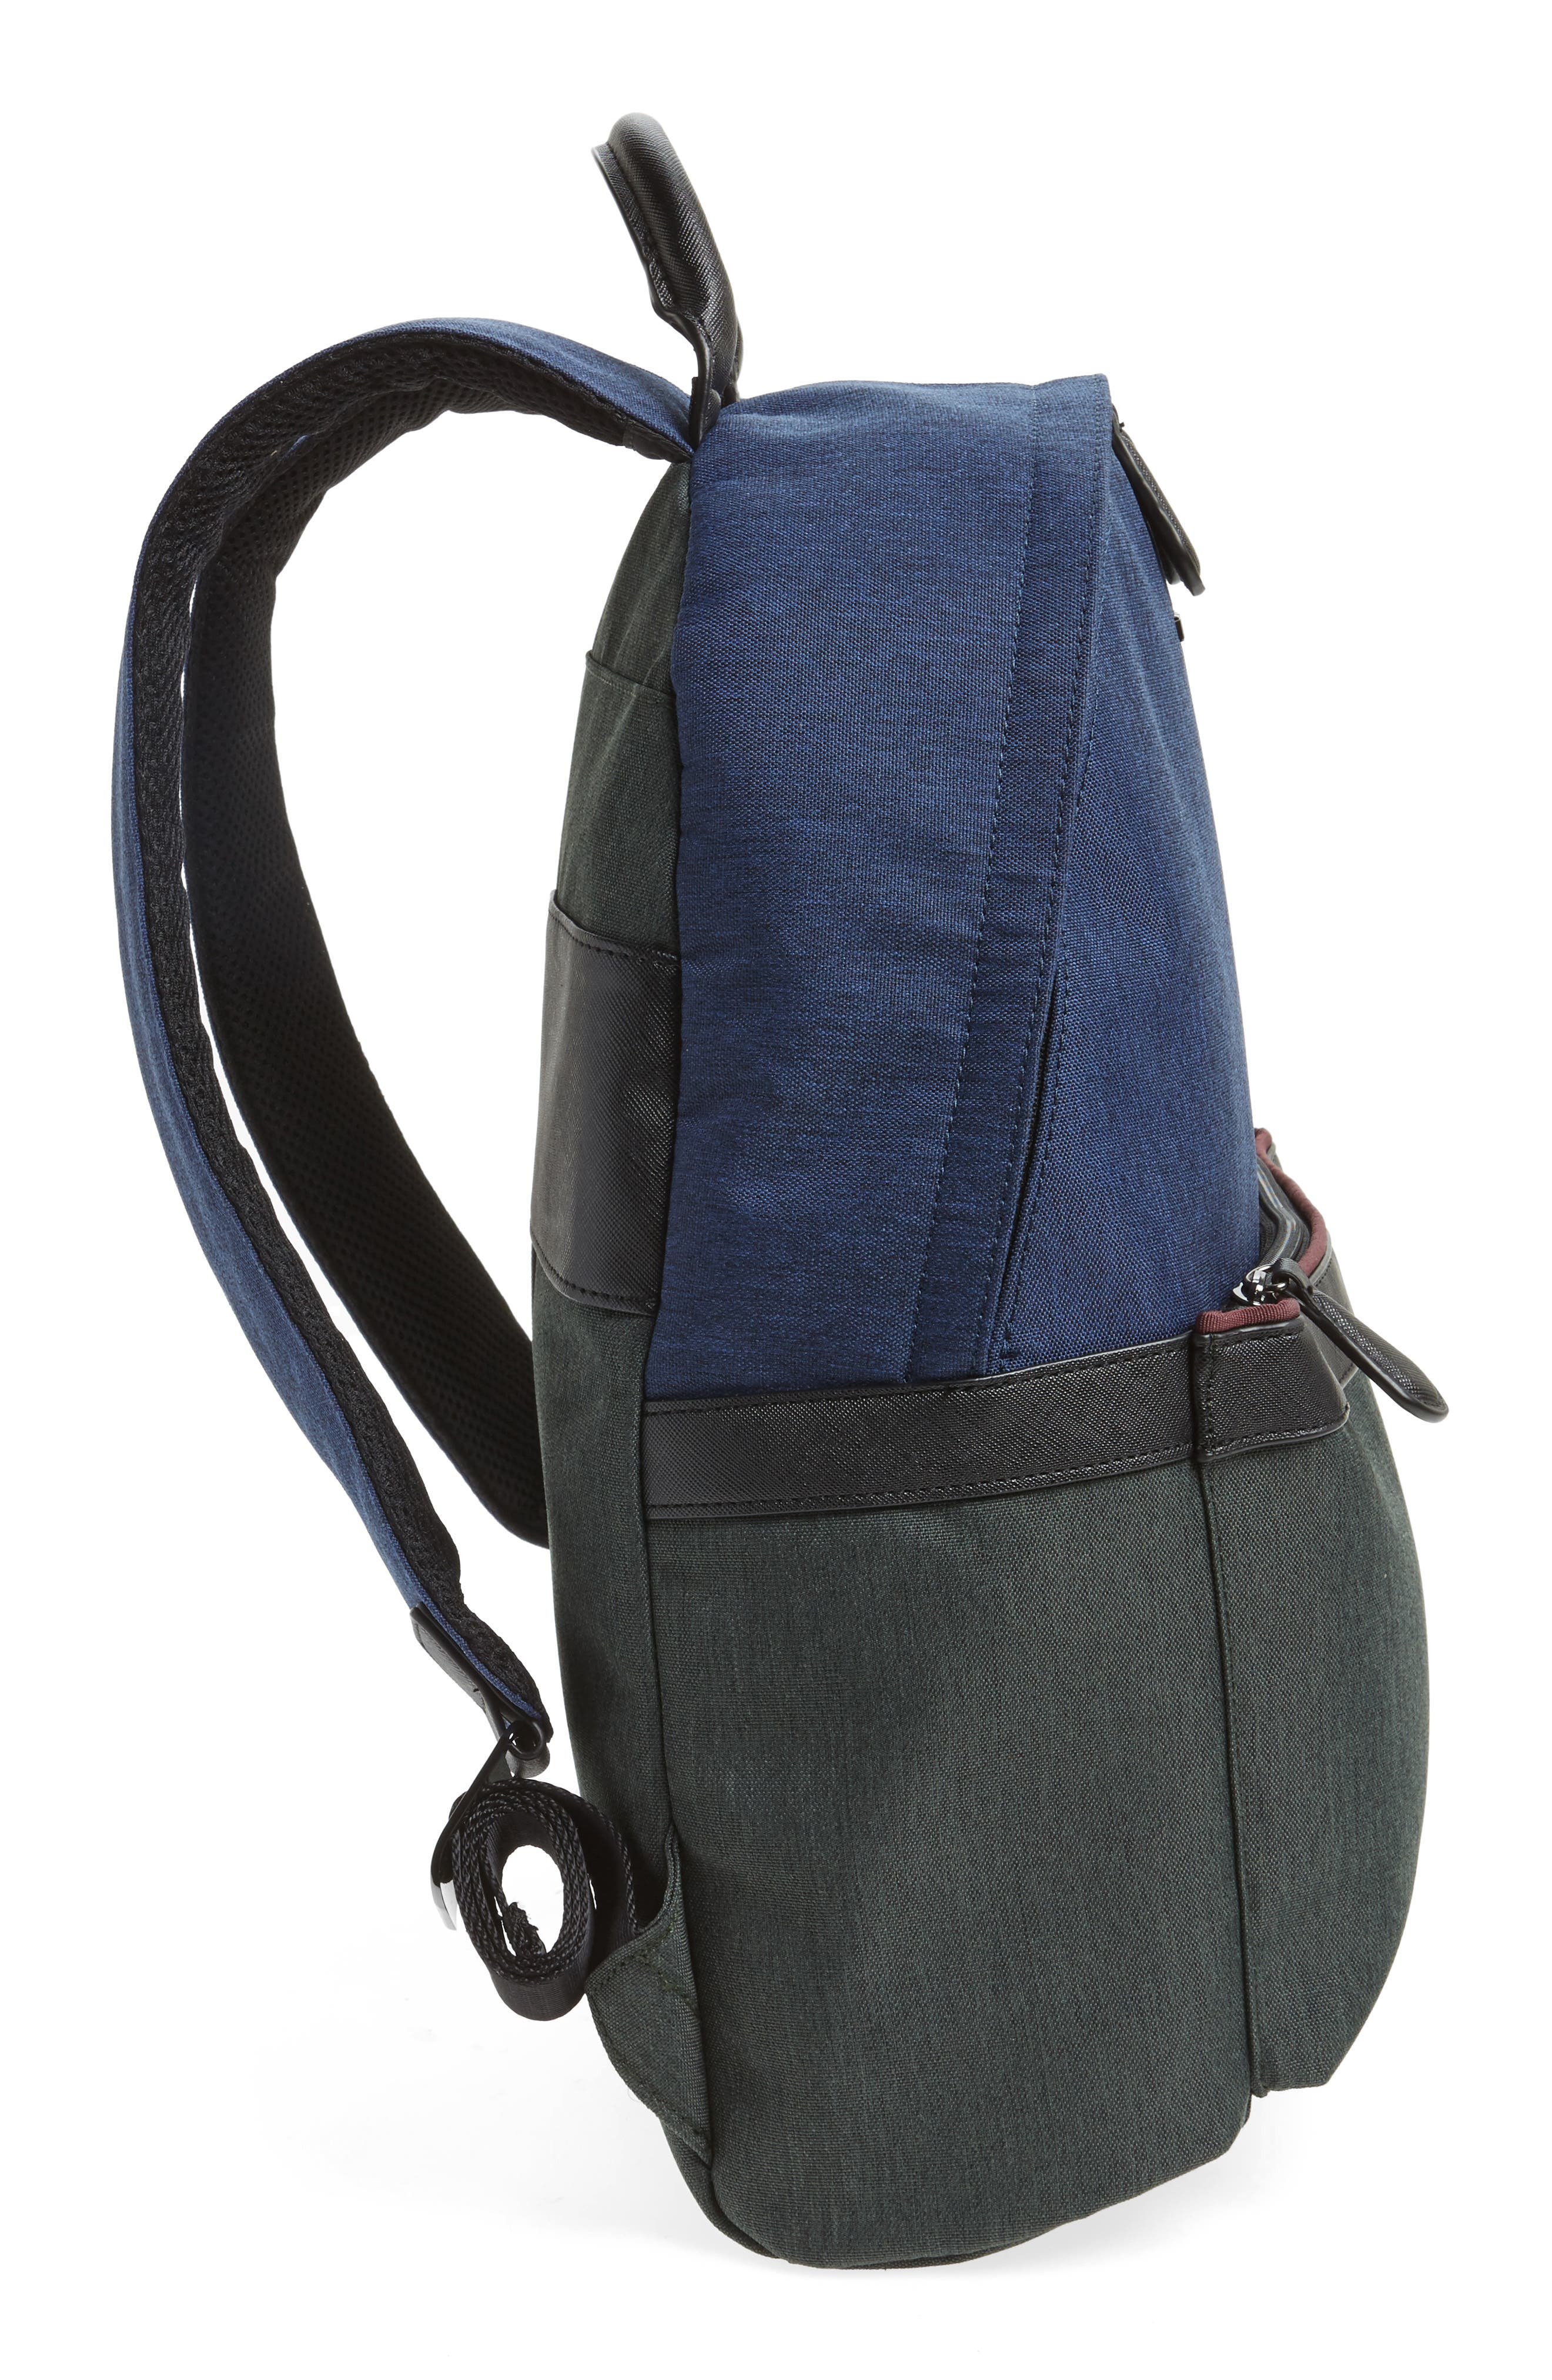 Zirabi Backpack,                             Alternate thumbnail 5, color,                             Blue